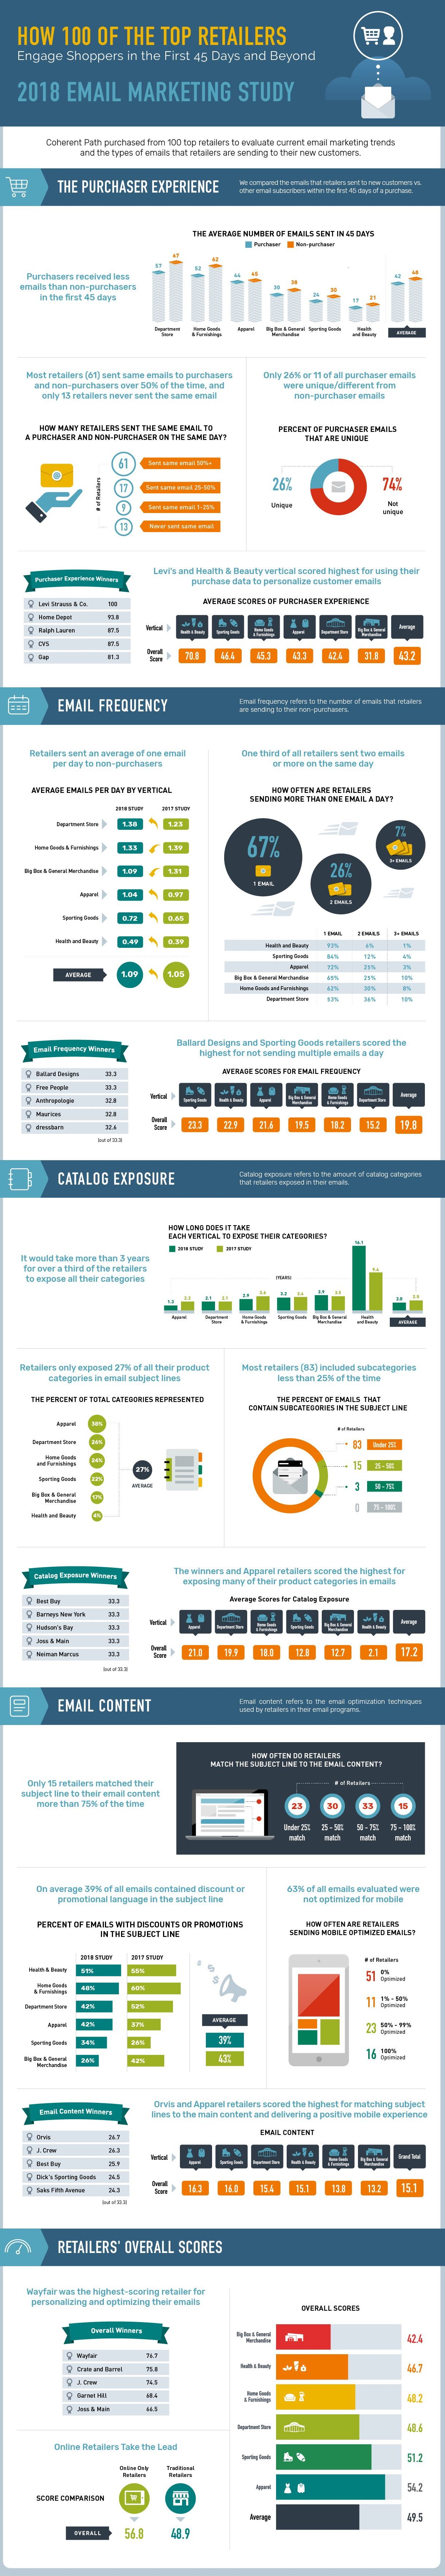 Infographic: Email Engagement With New Shoppers